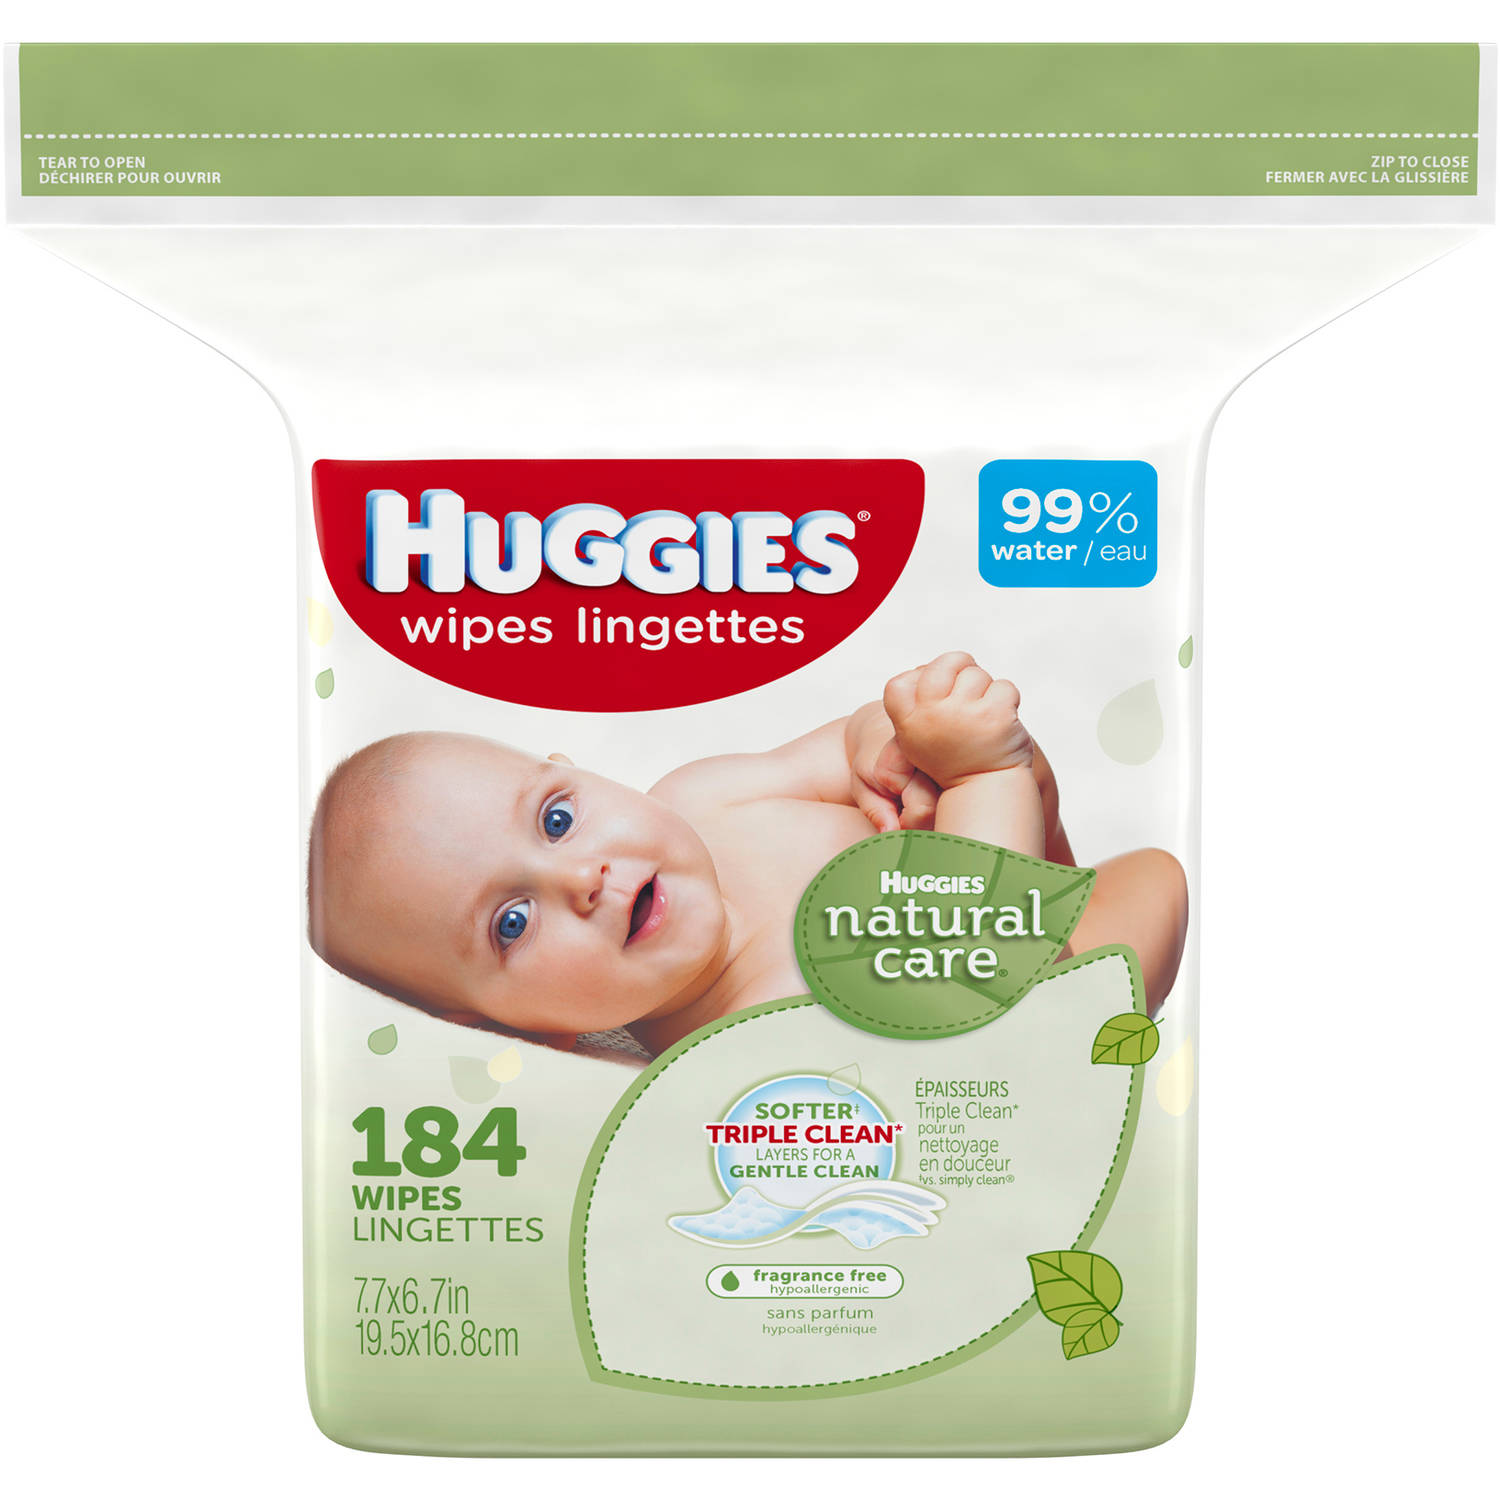 HUGGIES Natural Care Baby Wipes Refill, 184 sheets